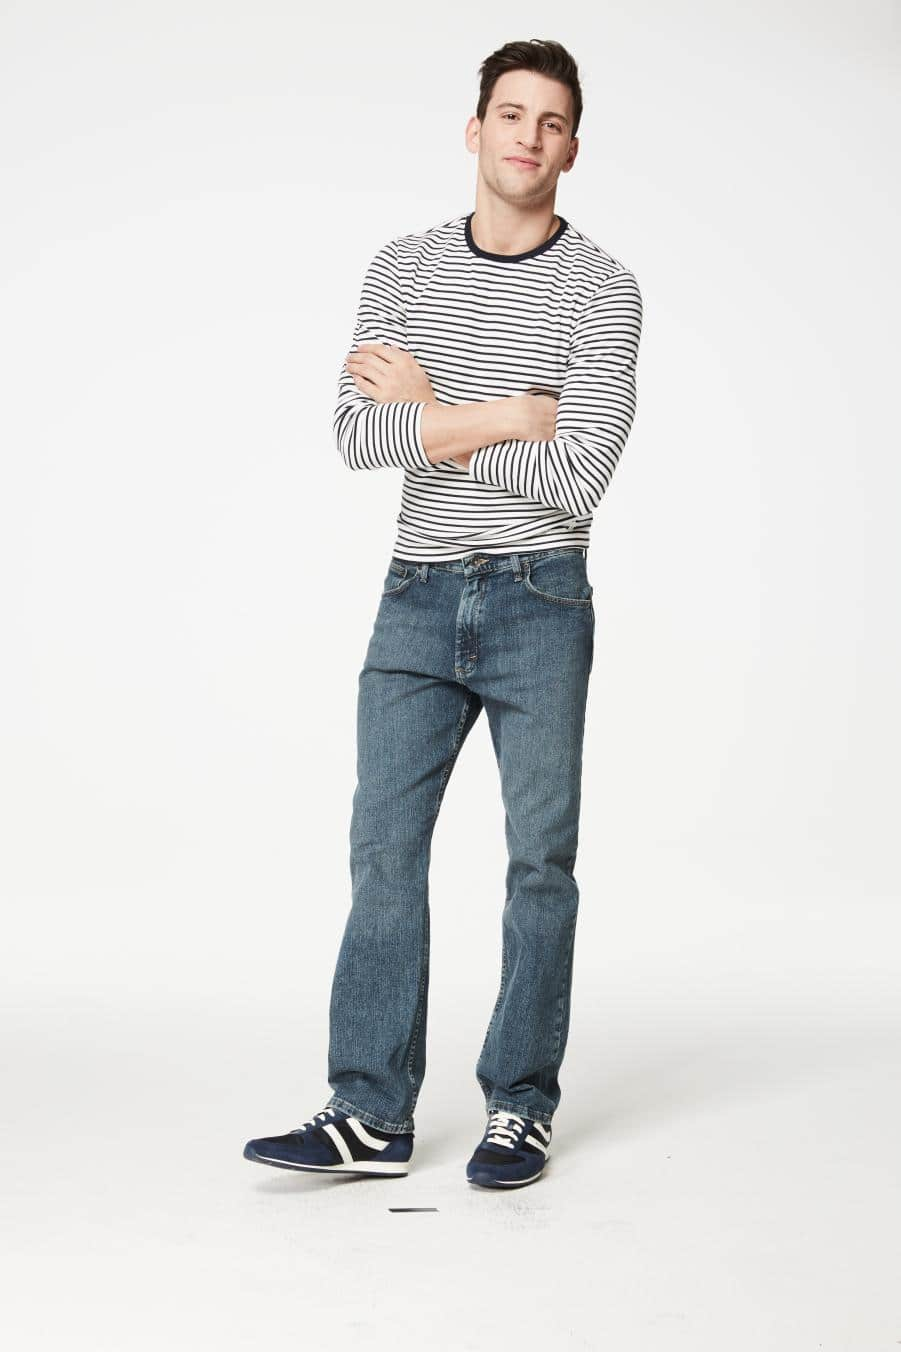 Macy's: 30% Off Select Styles of Wrangler Jeans Starting from $13.99